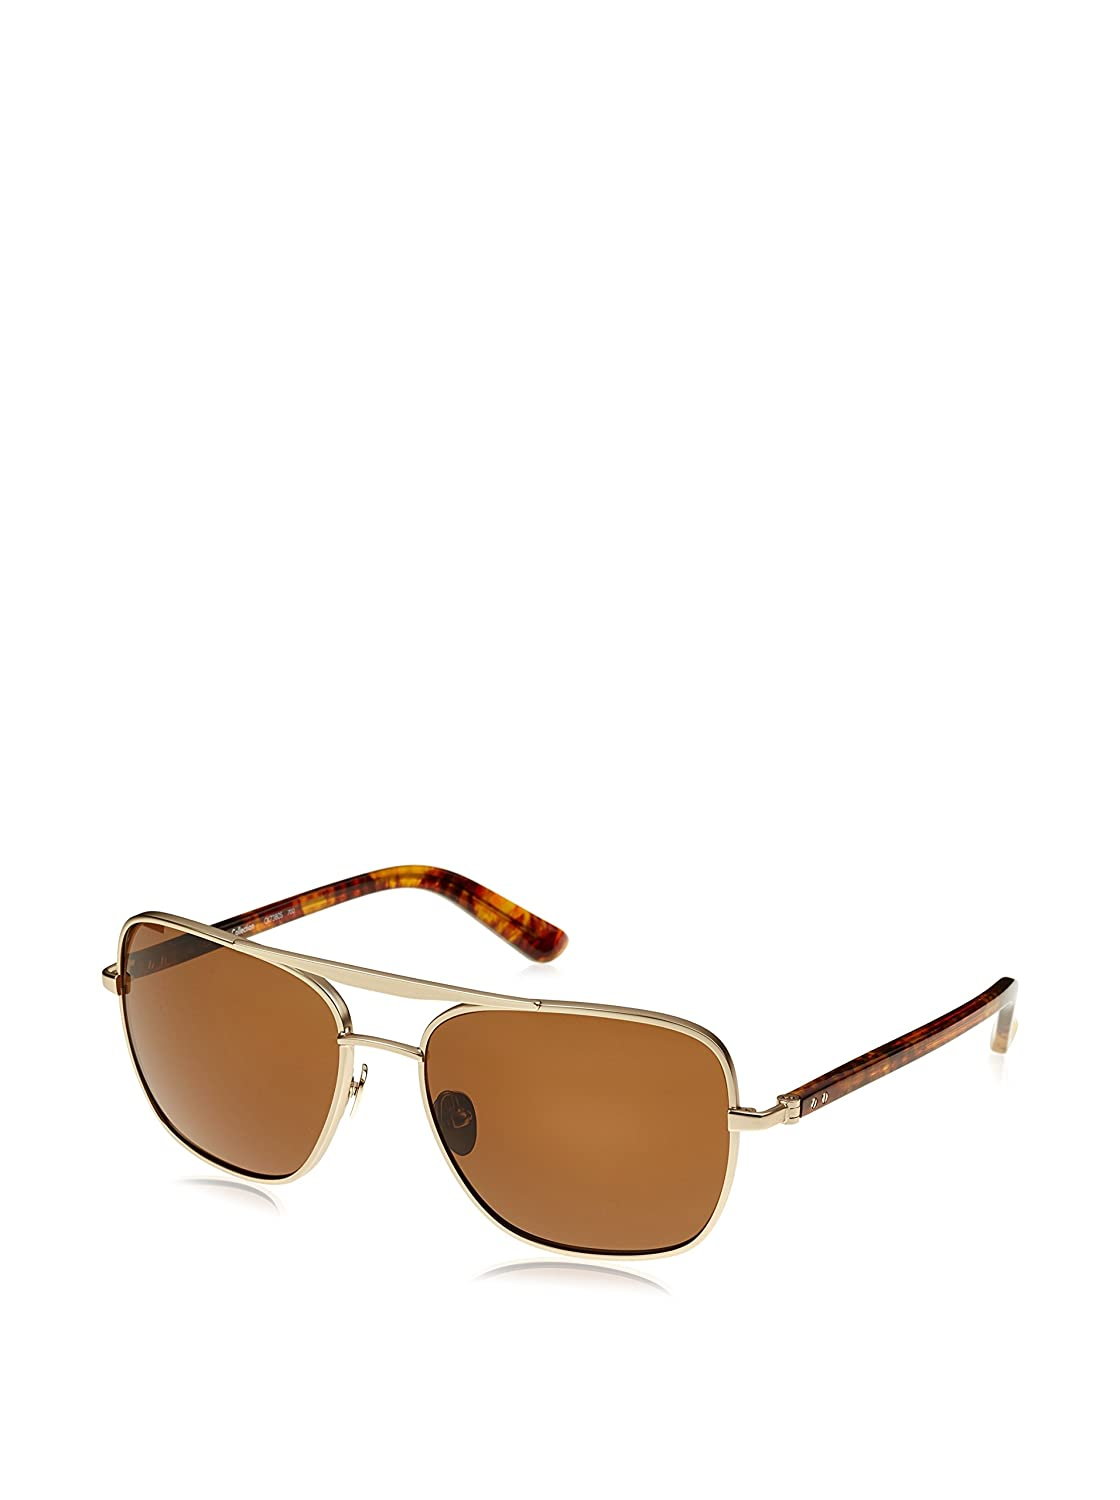 Calvin Klein CK7380S gafas de sol, Marrón (Light Gold/Brown), &uacut